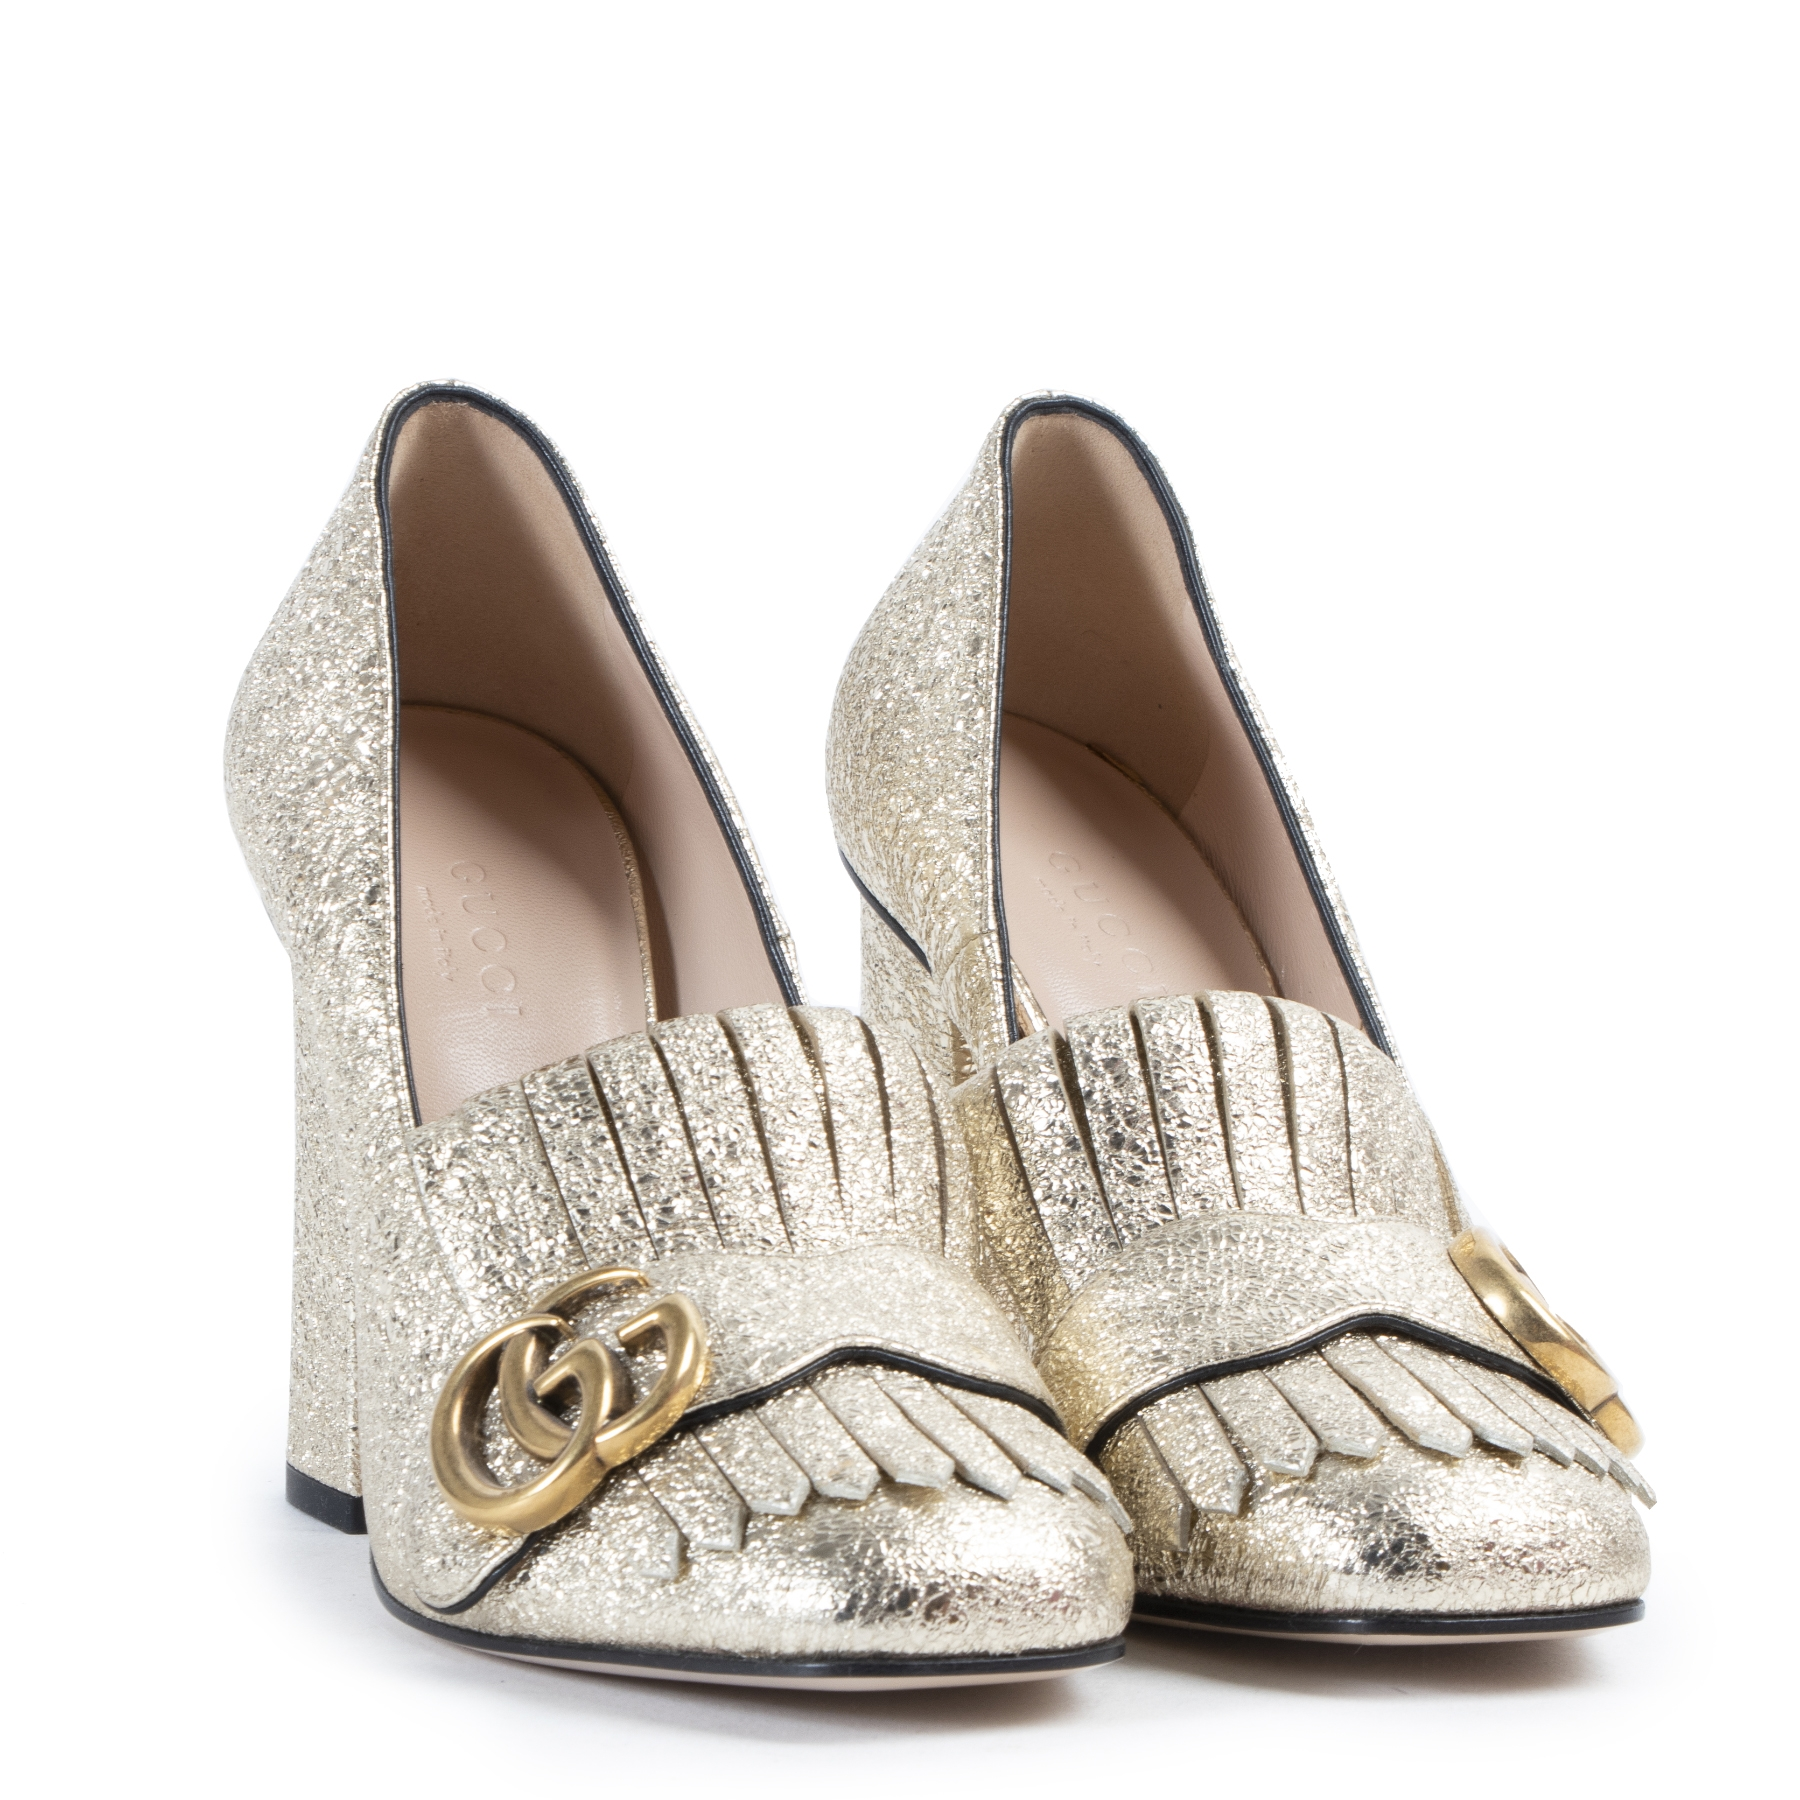 We buy and sell your authentic Gucci Marmont Metallic Gold Pumps